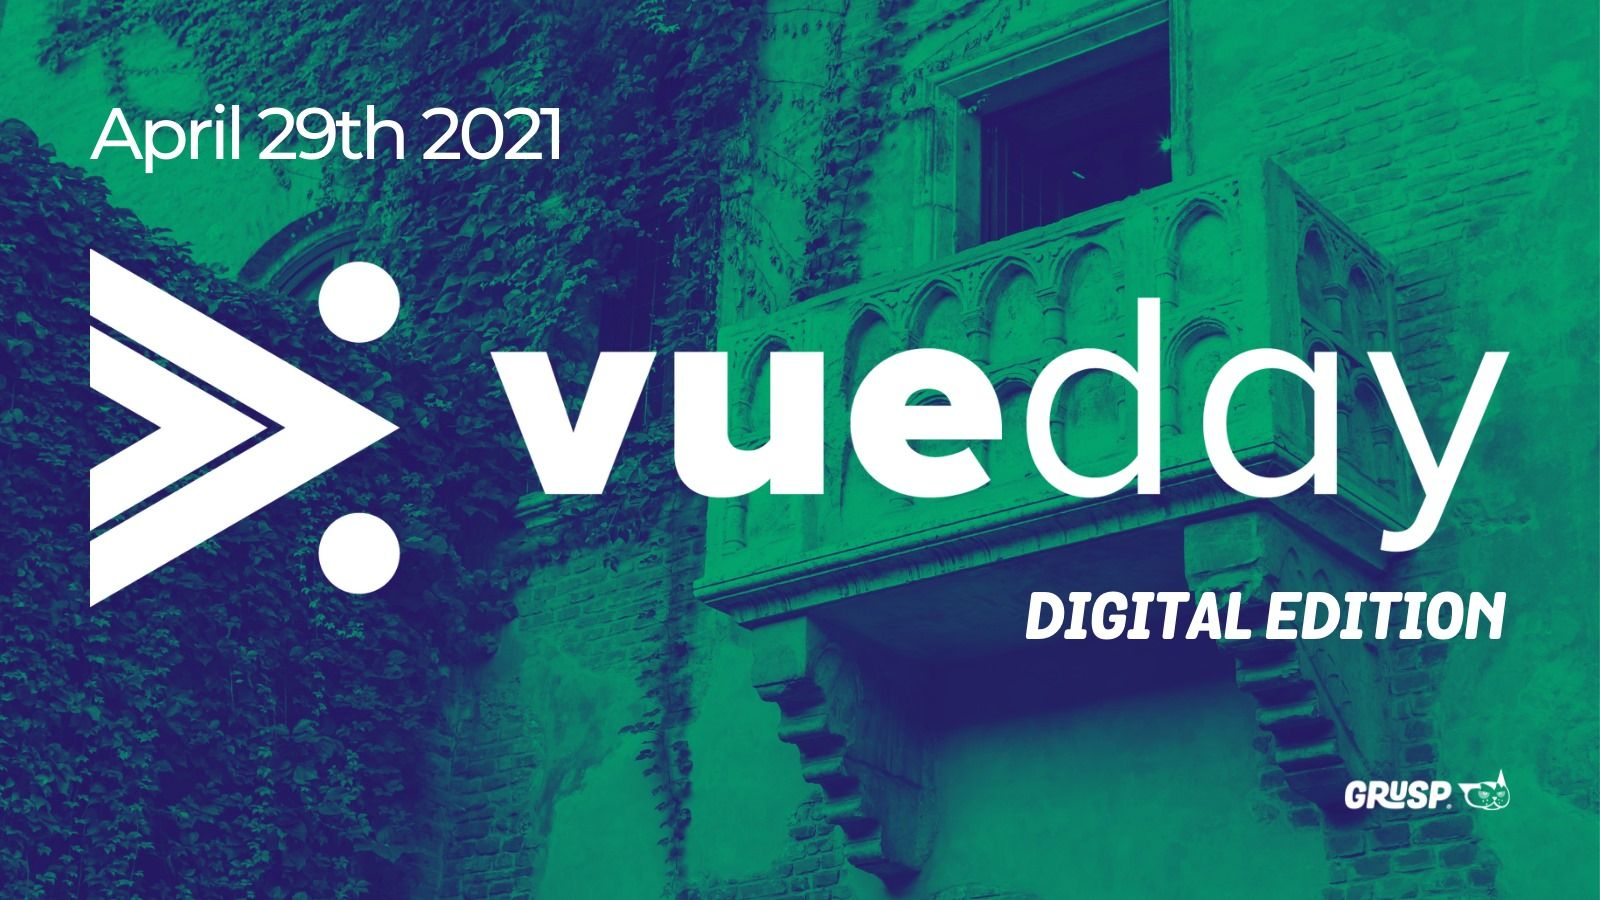 VUEday Digital Edition